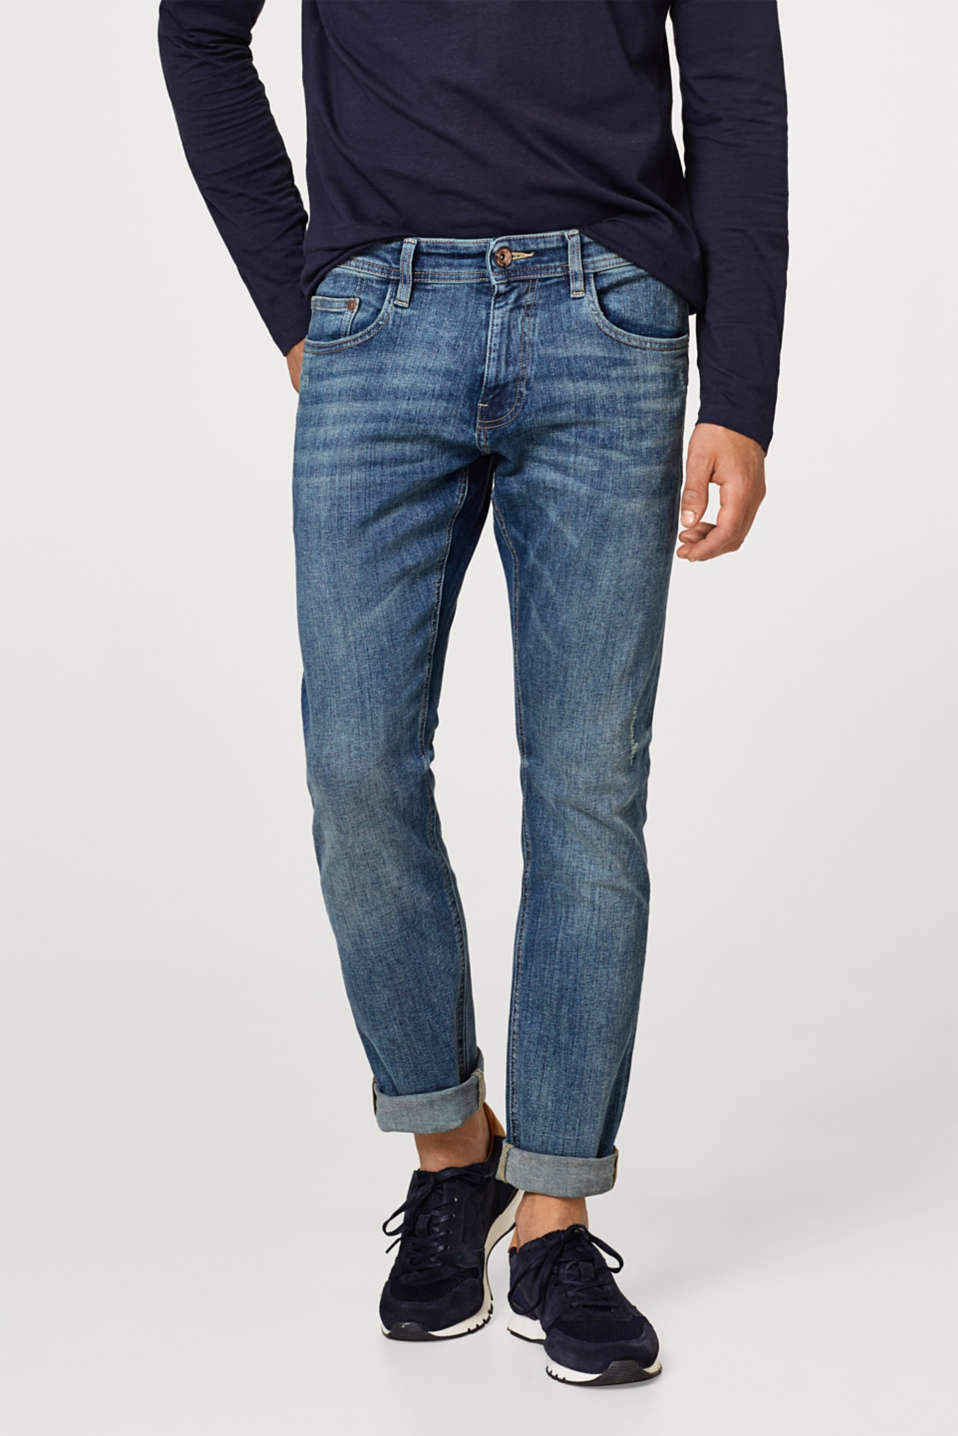 Esprit - Stretch jeans with vintage effects, organic cotton